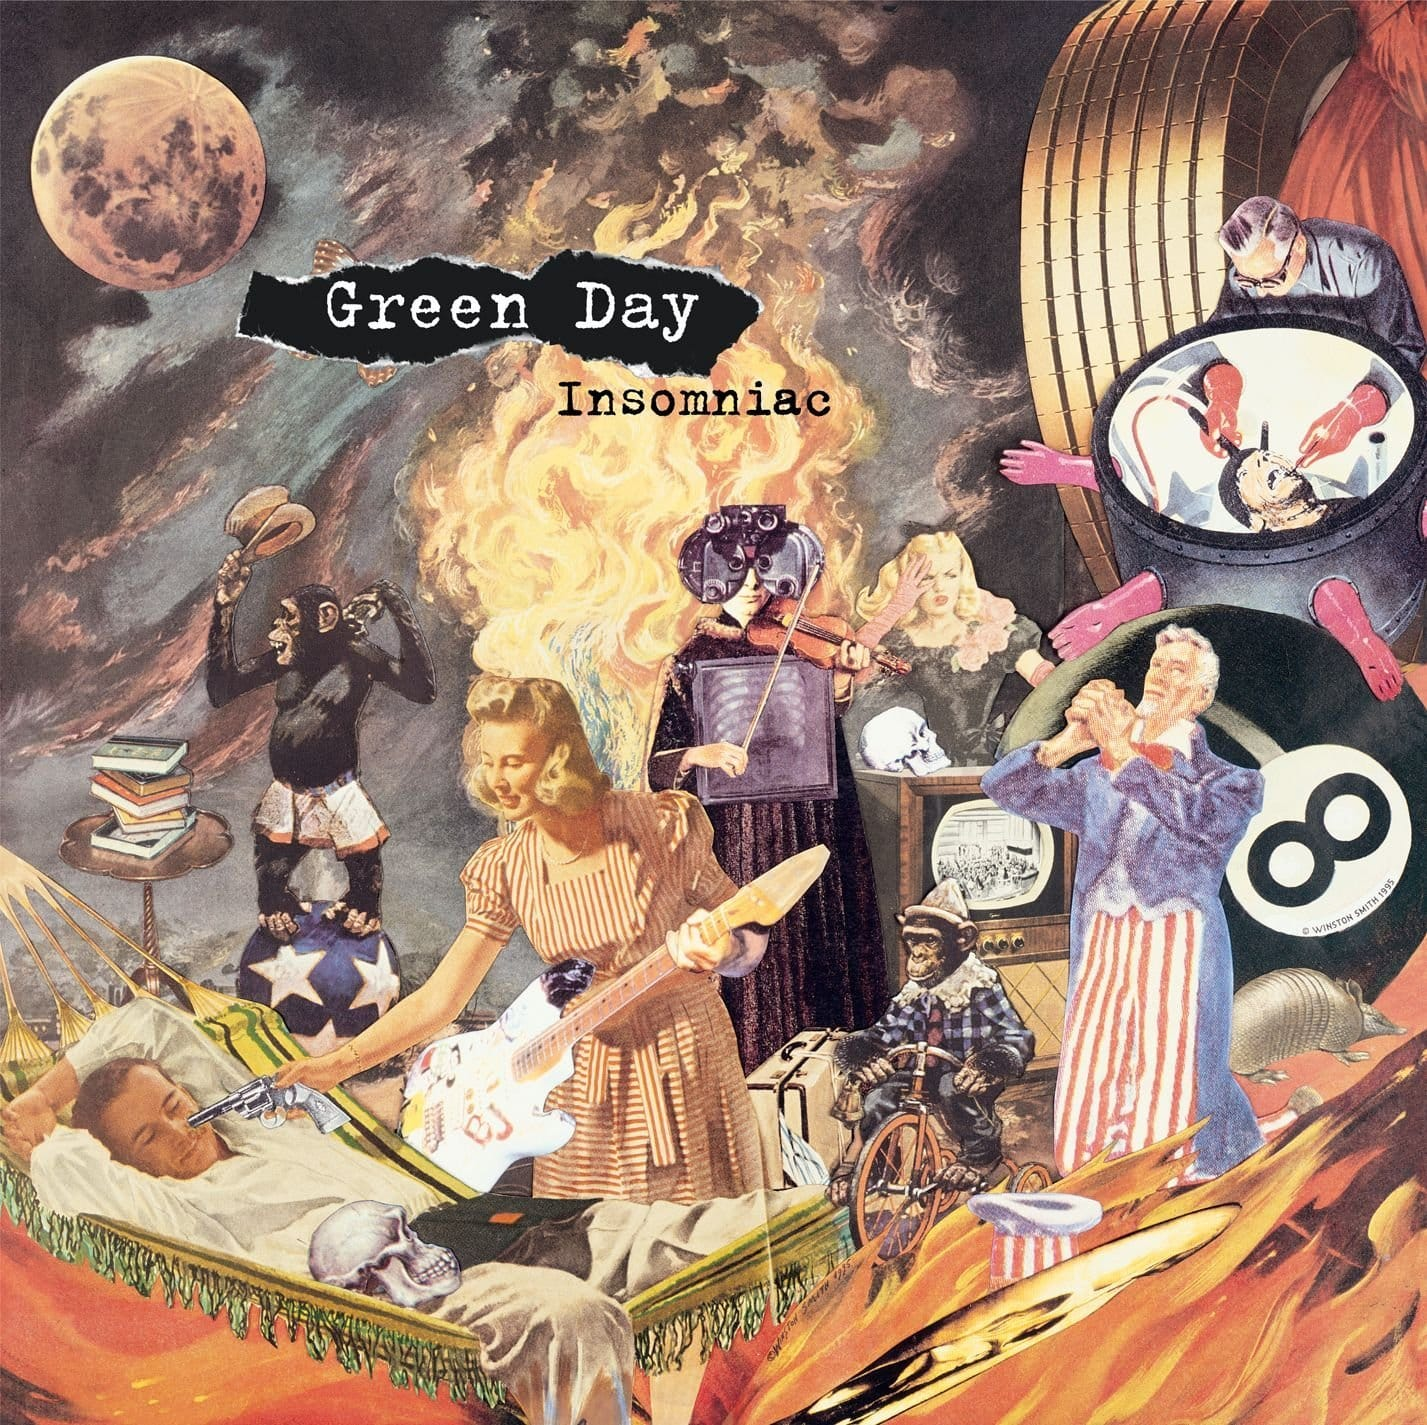 Green Day Vinyl on sale @ Amazon $12 - Insomniac, Dookie, Kerplunk